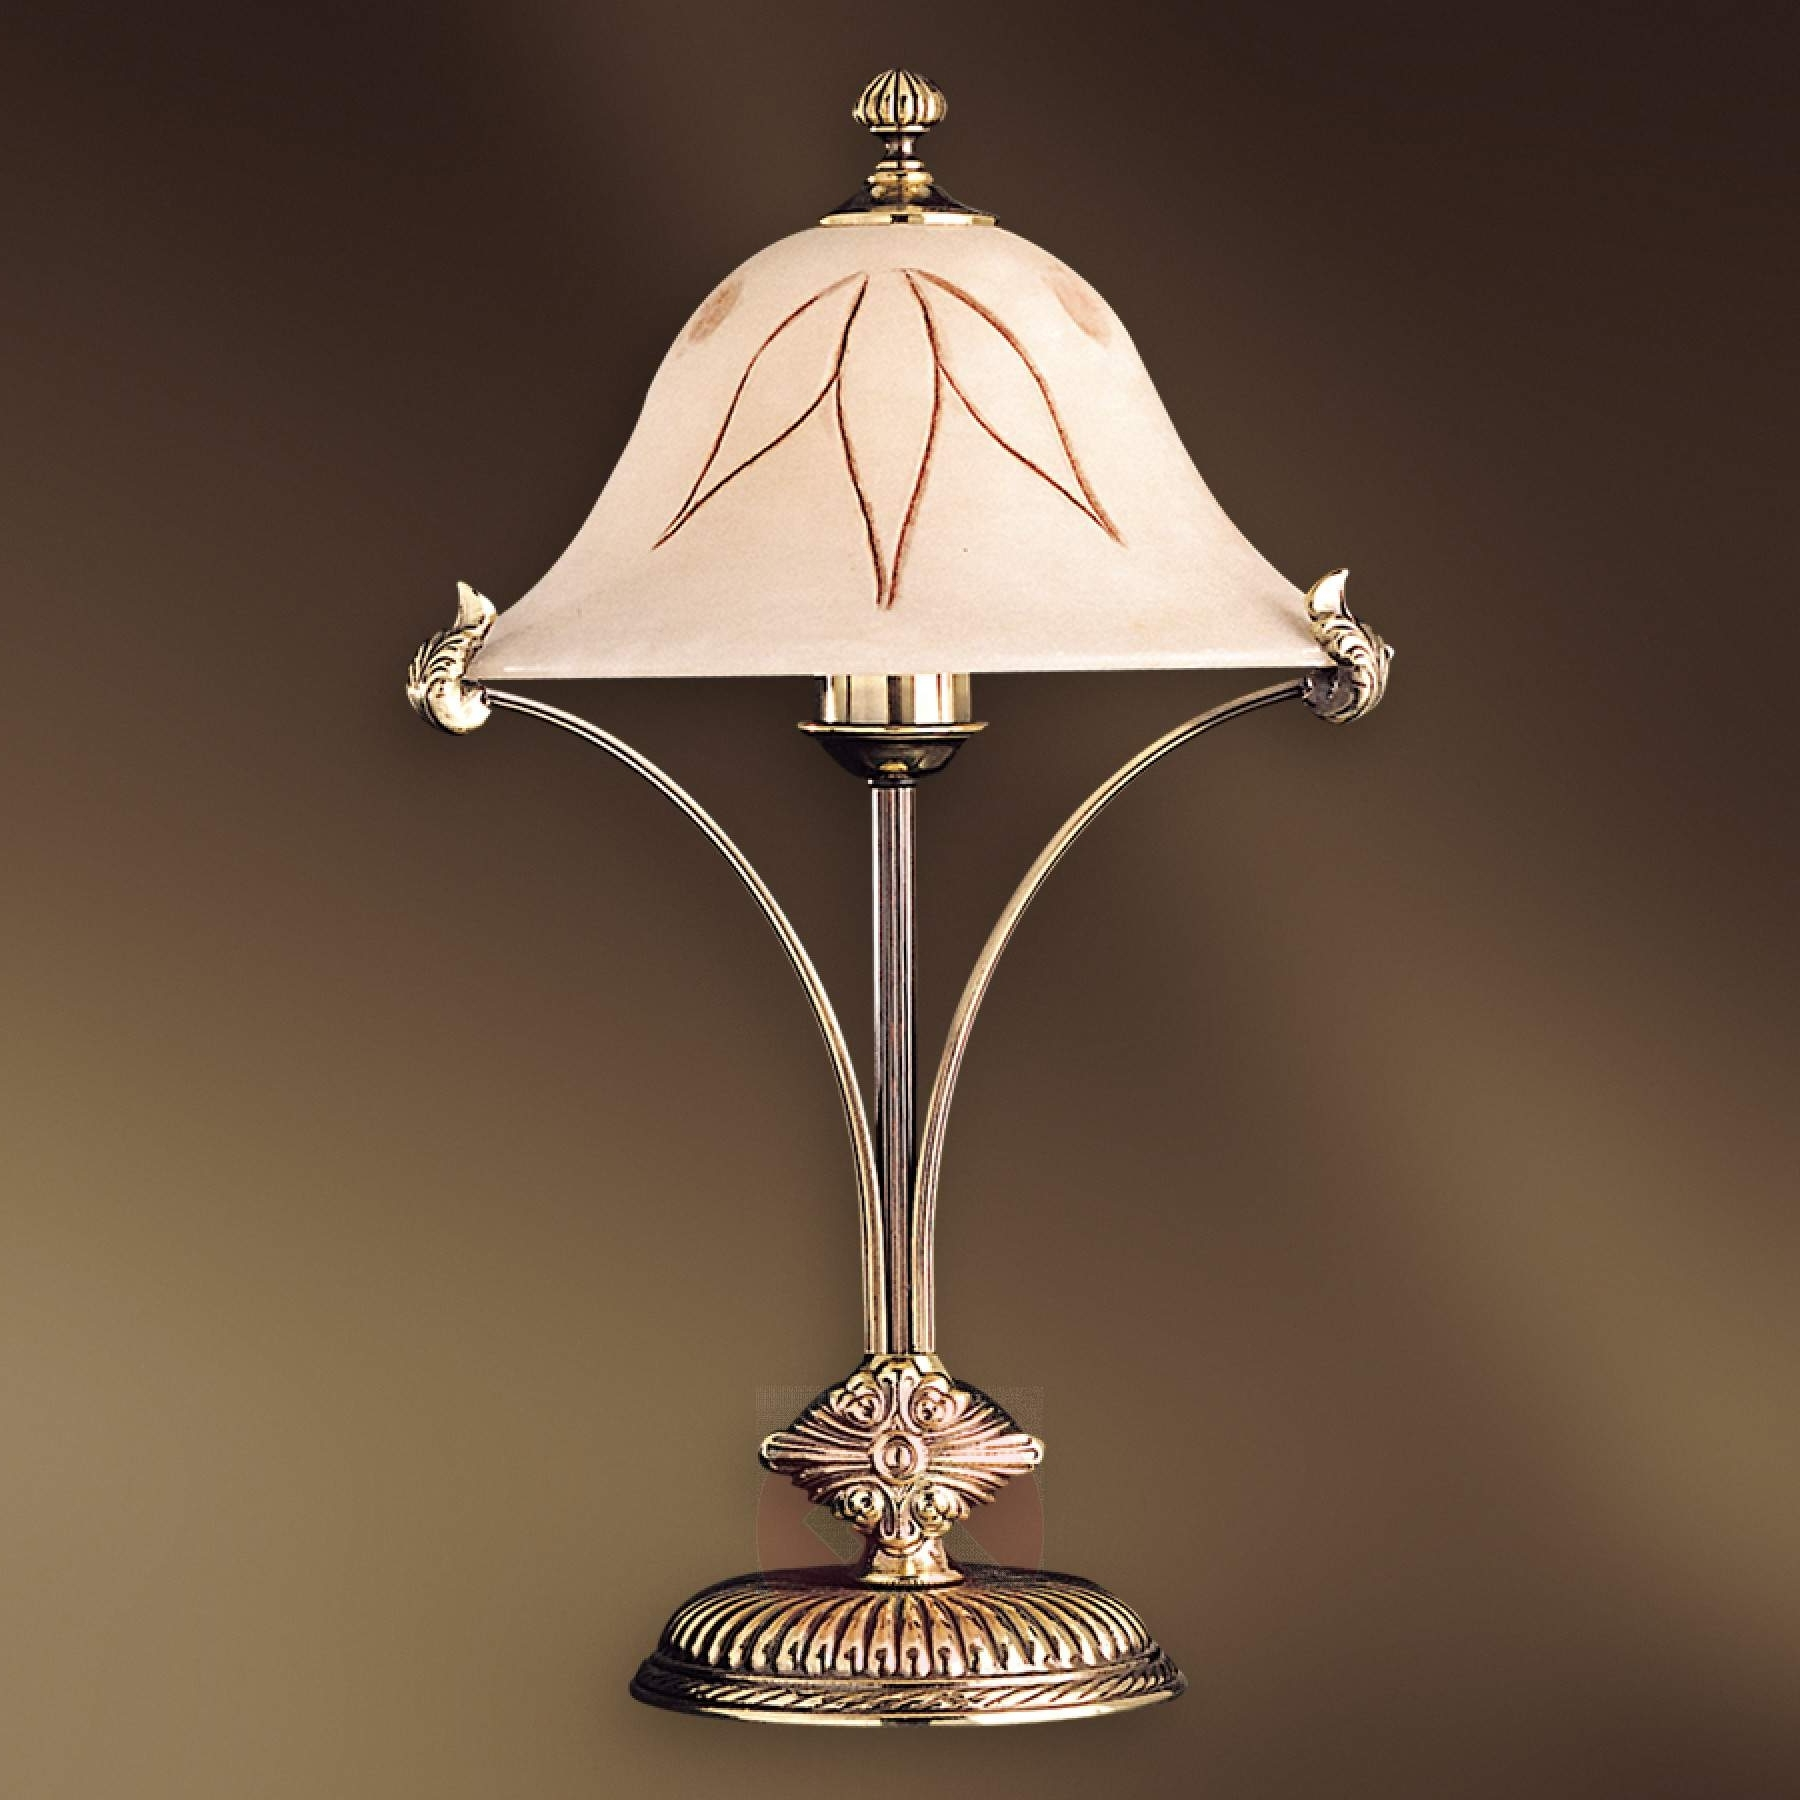 Newest Amazing Classic Table Lamp 5 Antique Brass Cream Shade Jpg T With Antique Living Room Table Lamps (View 13 of 15)